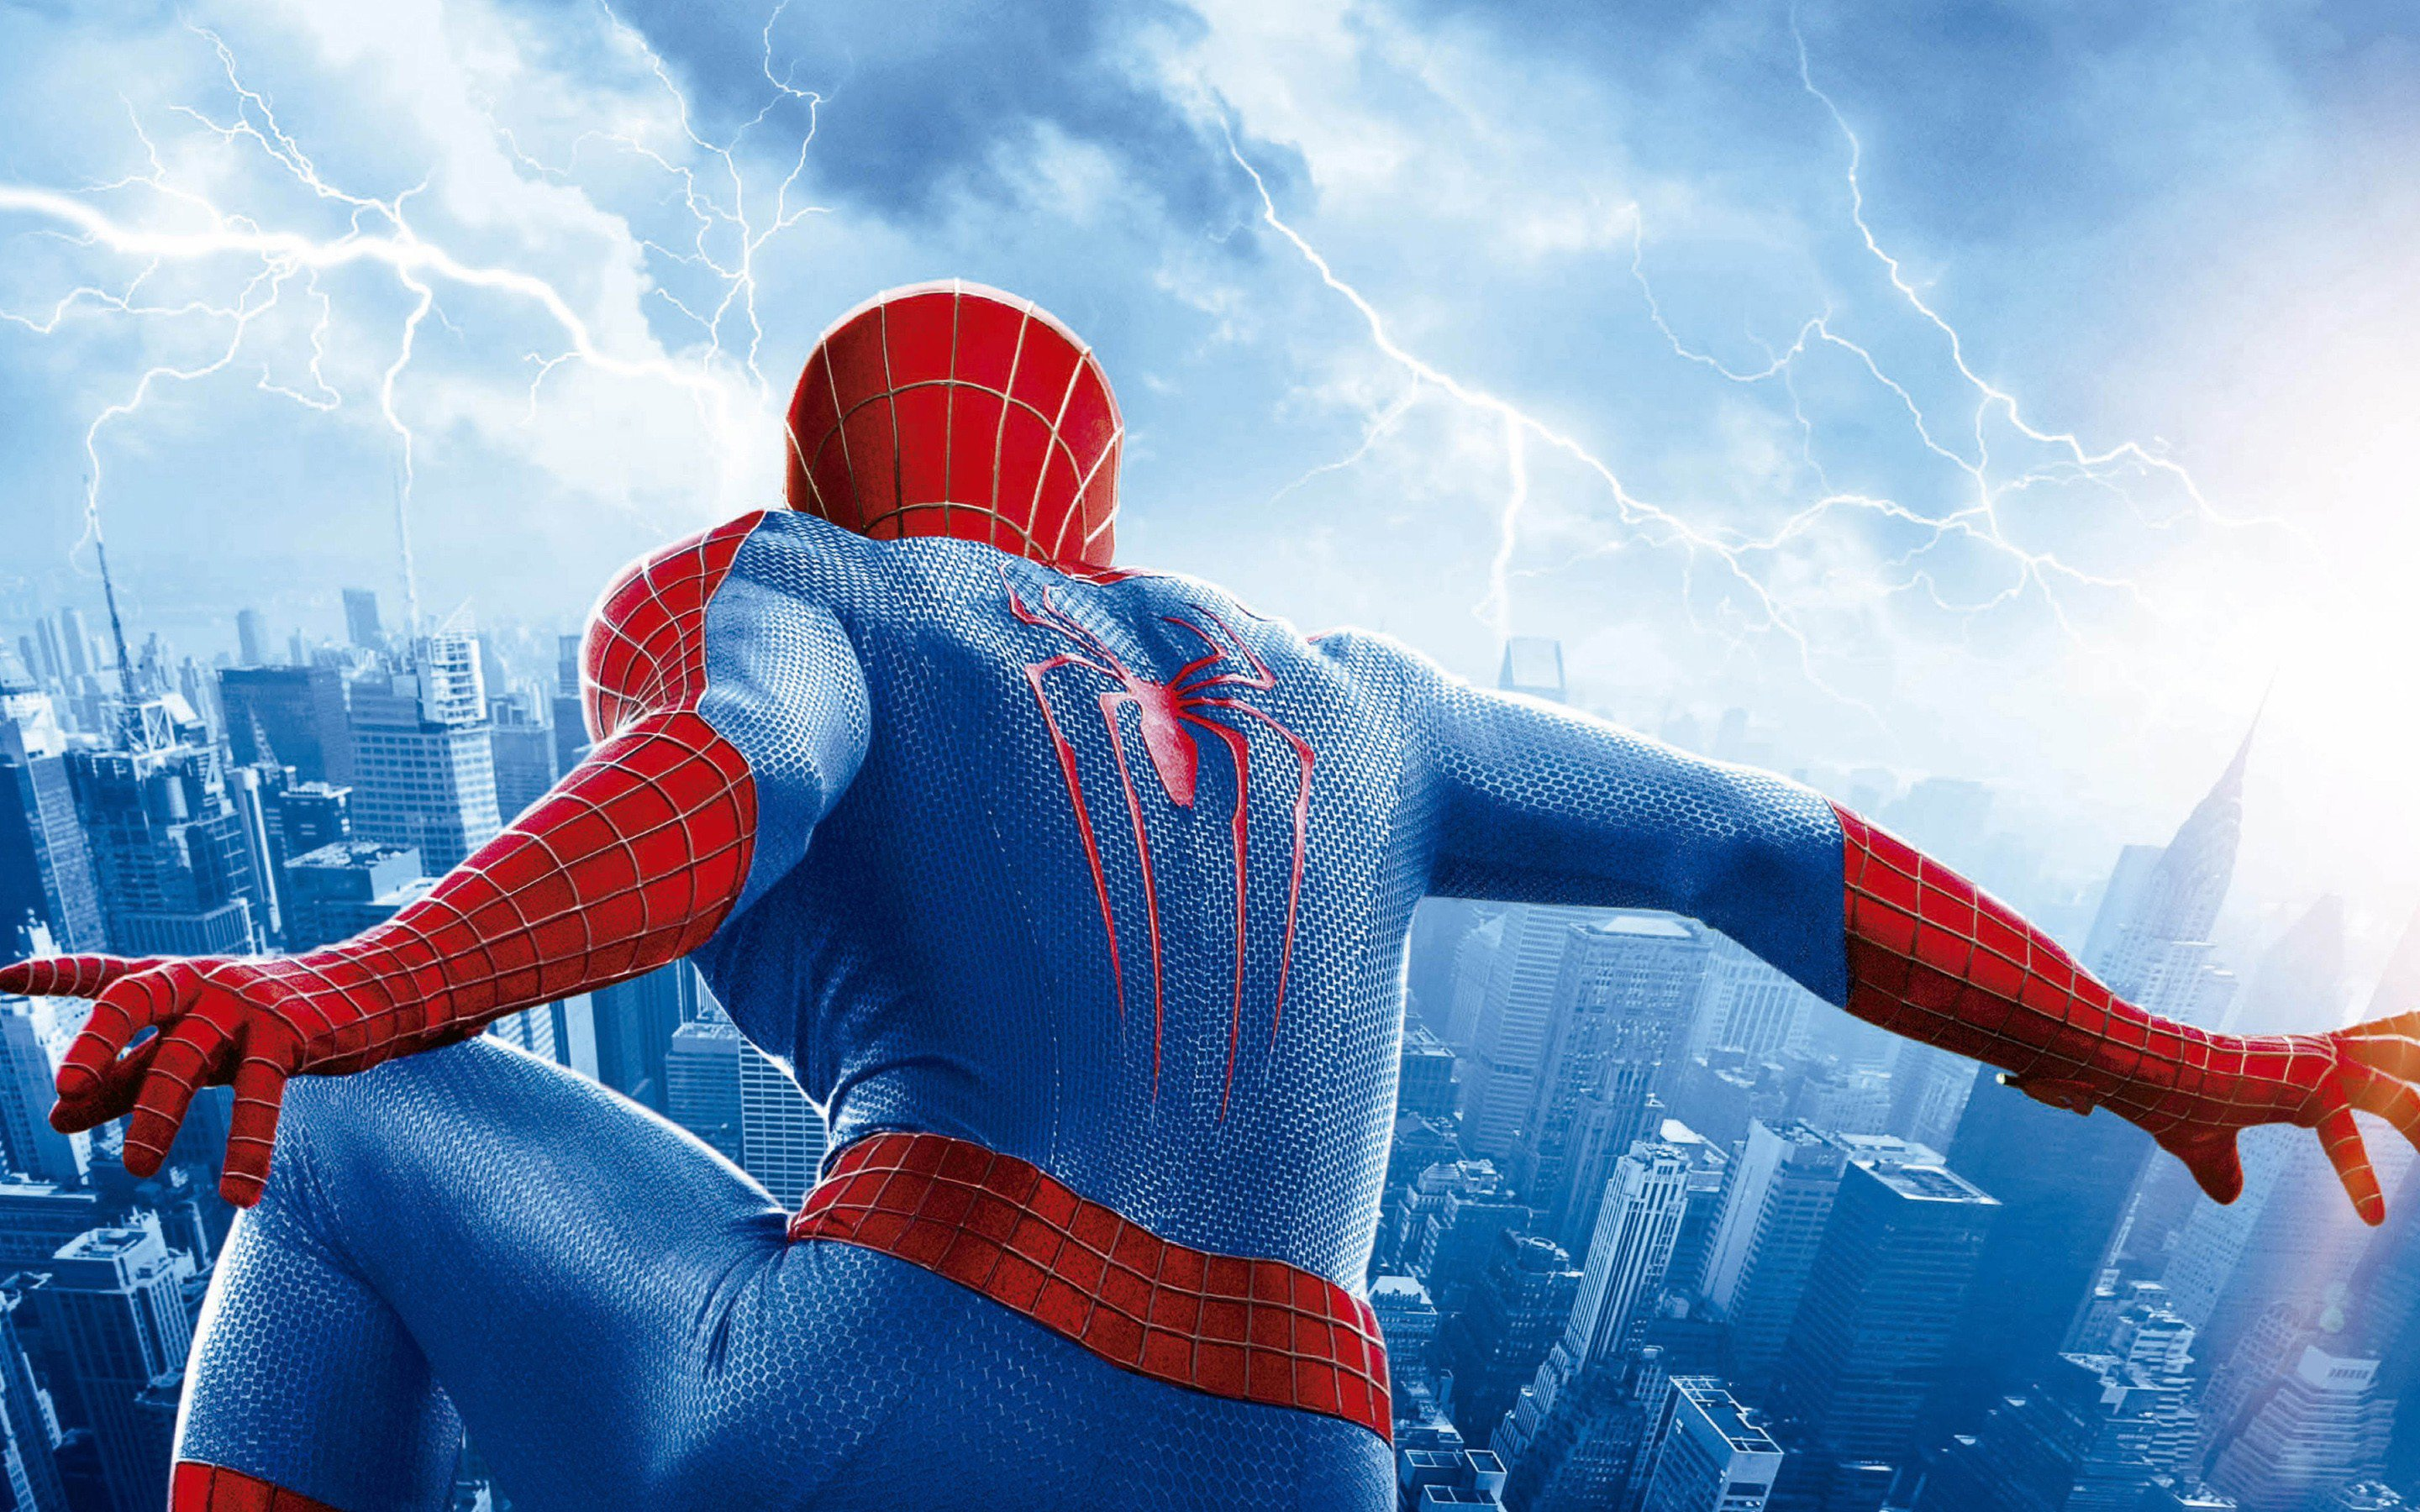 The amazing spider man movie hd movies 4k wallpapers - New spiderman movie wallpaper ...